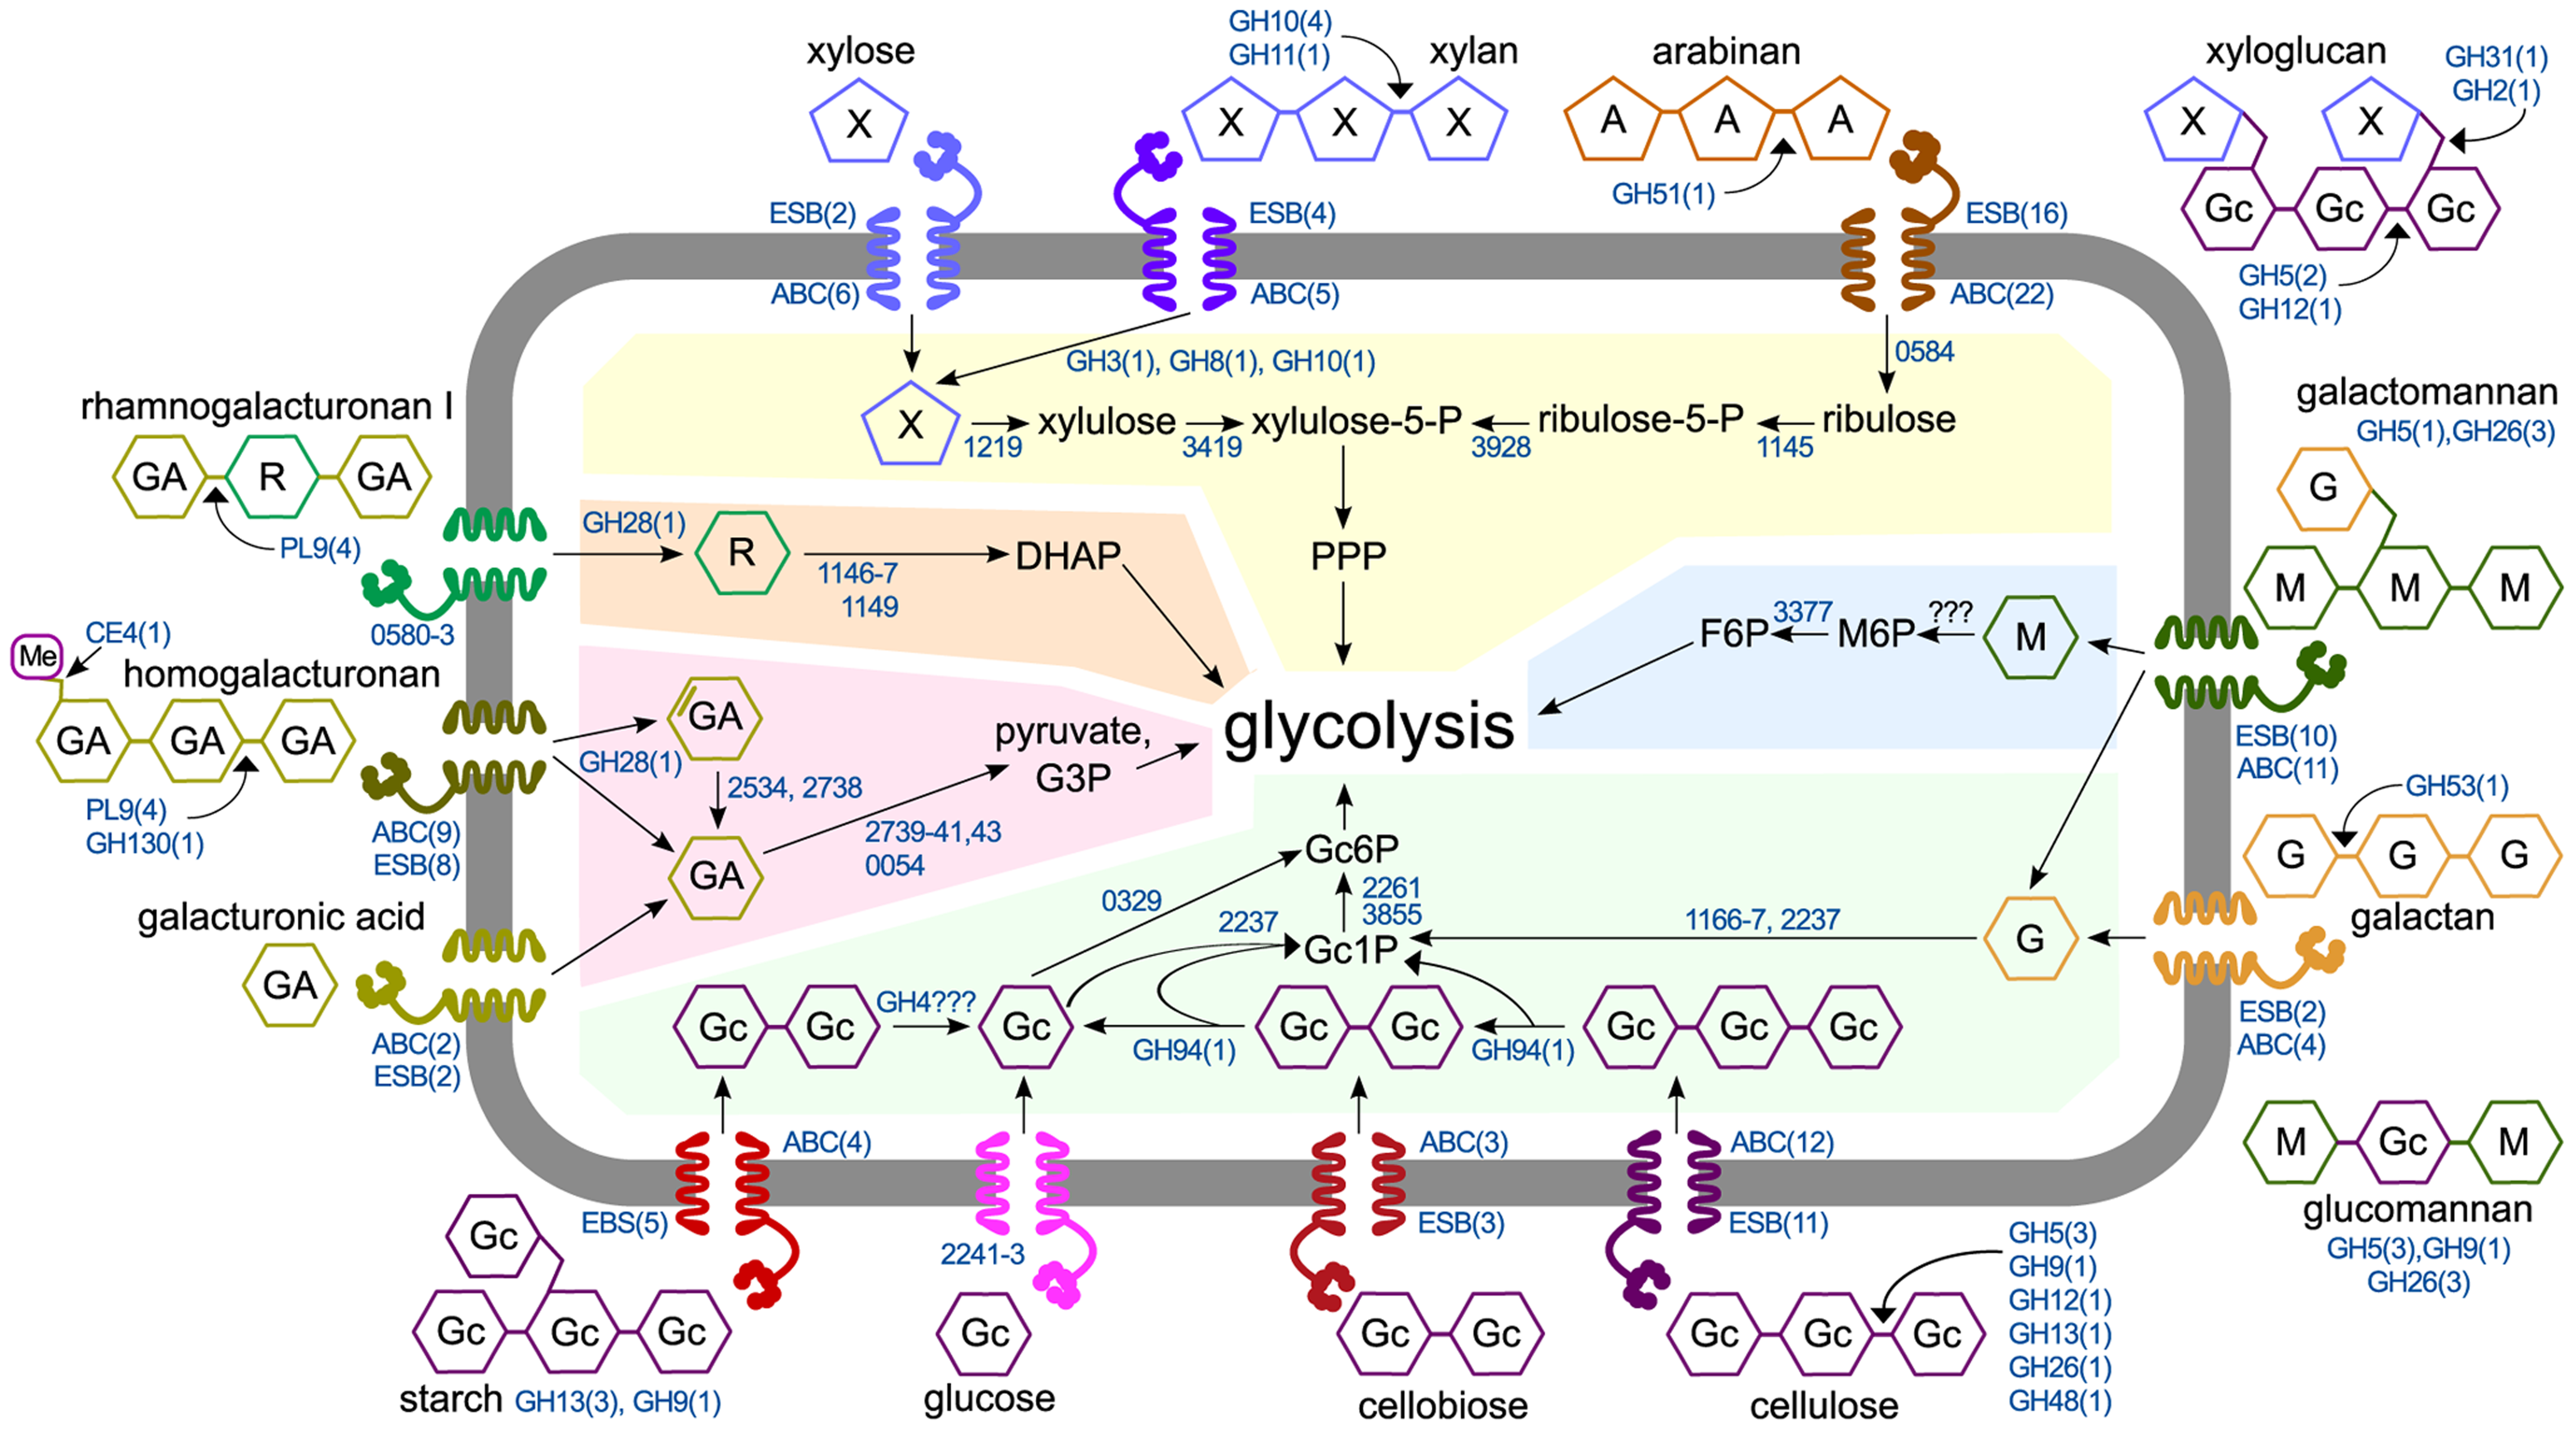 Model of polysaccharide degradation and metabolism by <i>C. phytofermentans</i>. CAZymes (shown as the number of enzymes in CAZy families) are based on purified activities and are intra- or extracellular based on putative secretion signals.